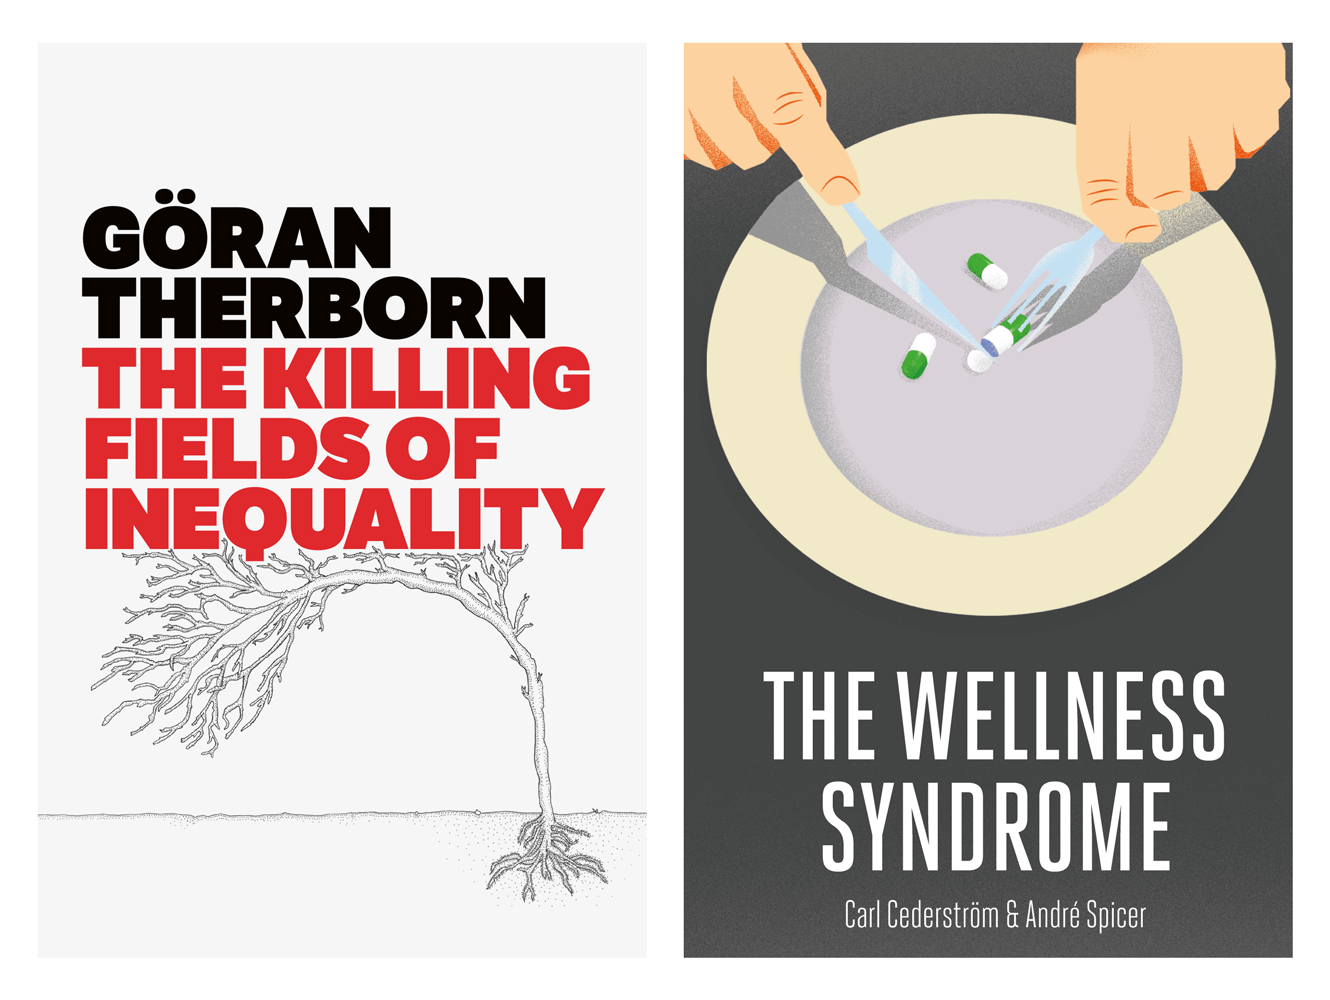 Book Cover Design For The Killing Fields Of Inequality And The Wellness Syndrome By Polity Books. Designed By &&& Creative